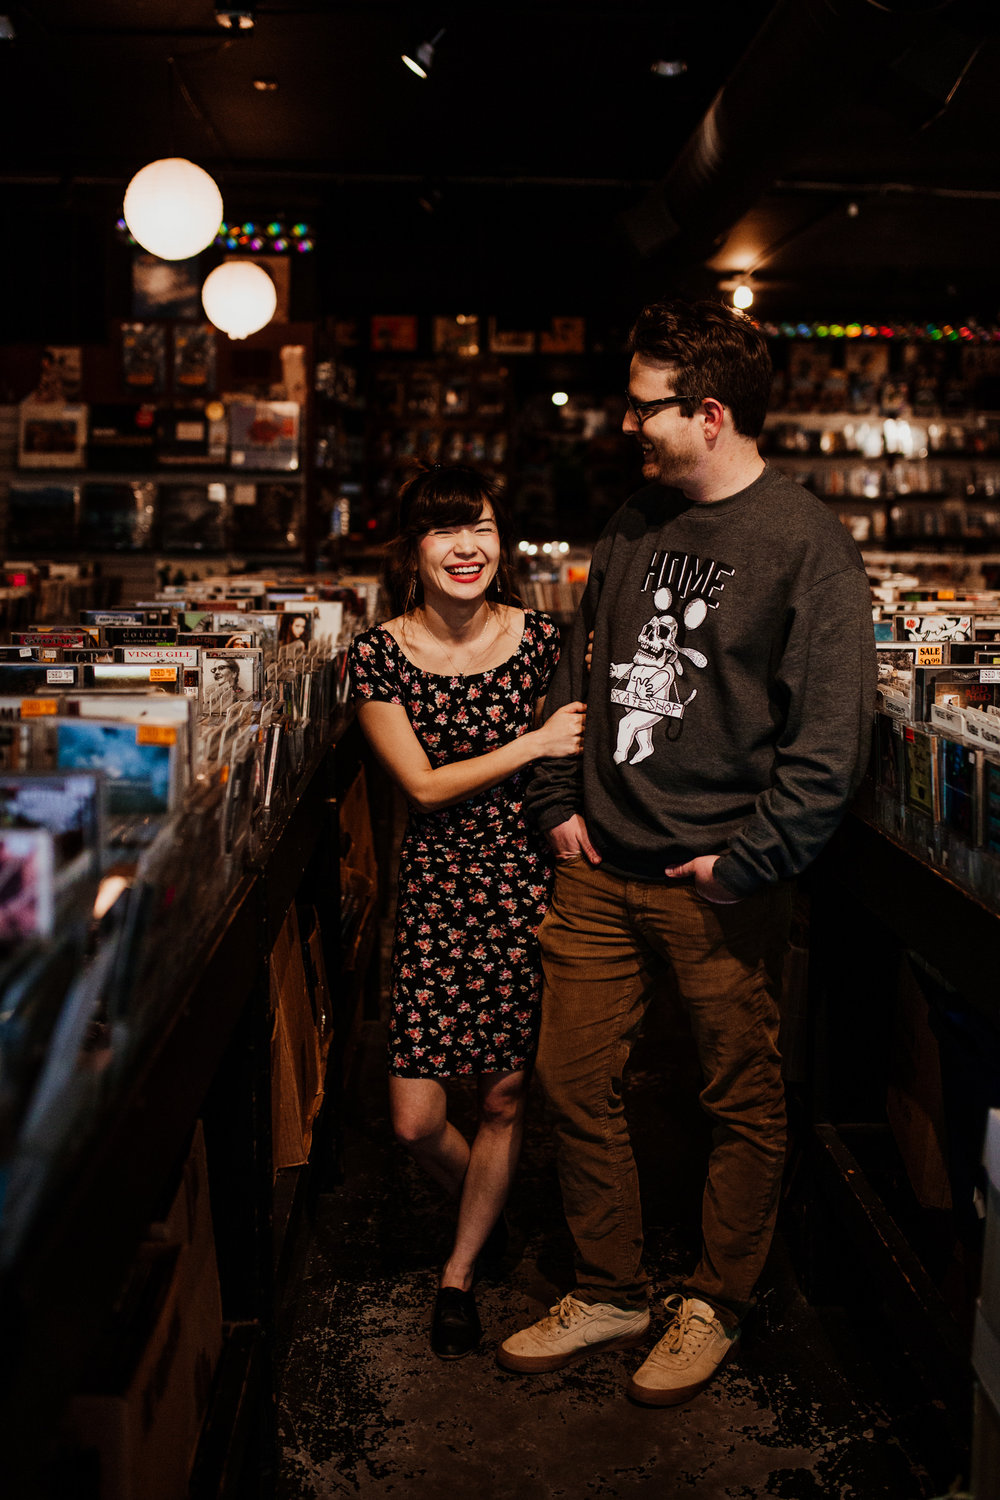 louisville-engagement-photographer-record-store-in-home-session-crystal-ludwick-photo (38 of 53).jpg